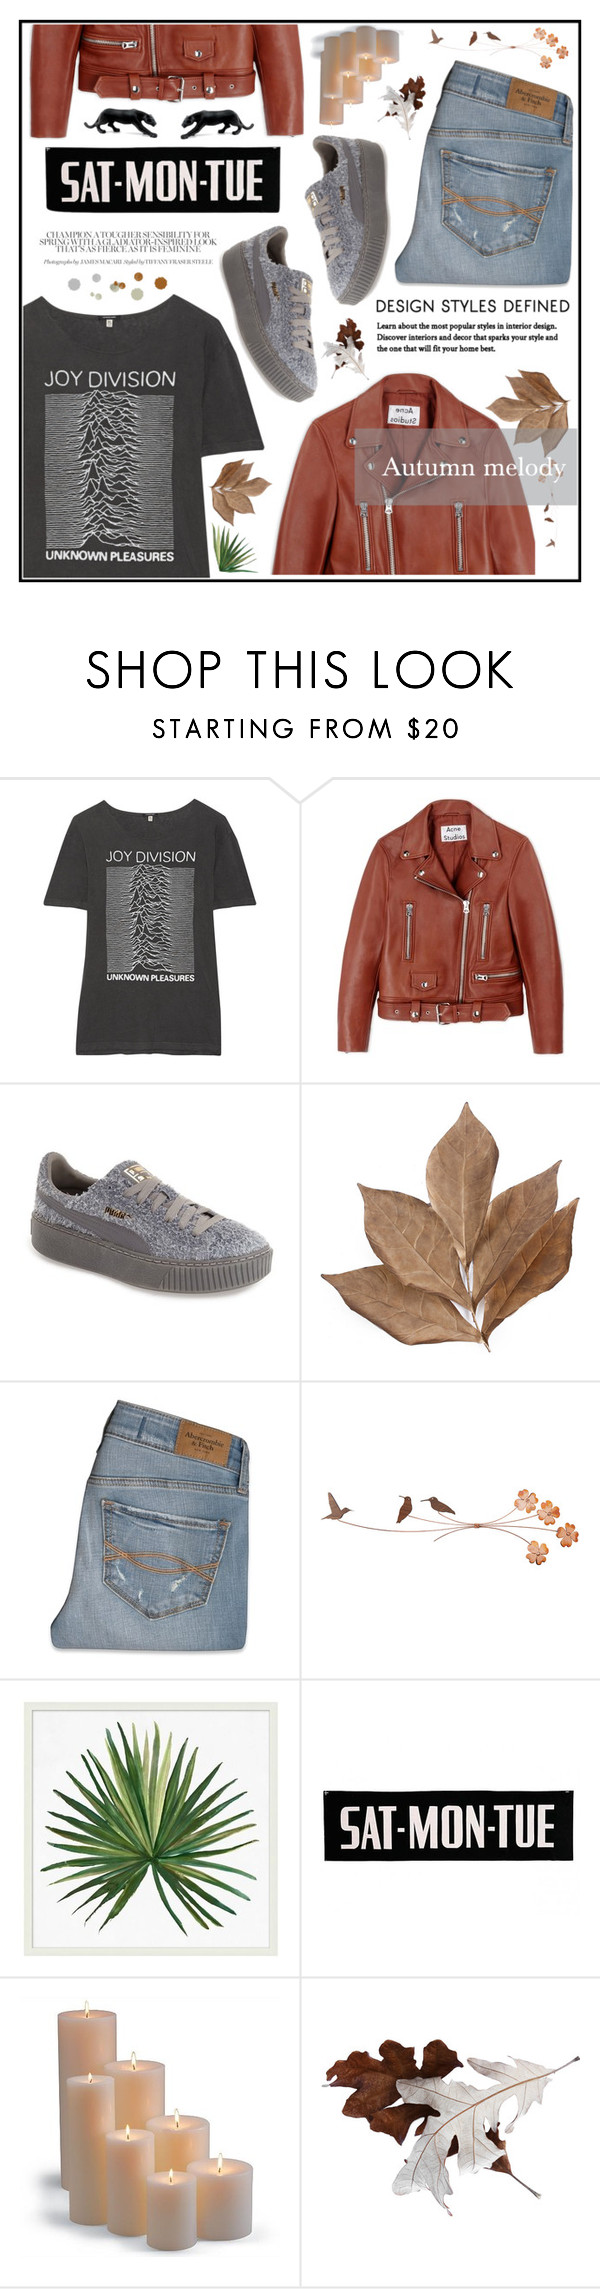 """""""Autumn melody"""" by fabfabiana ❤ liked on Polyvore featuring R13, Acne Studios, Puma, Bliss Studio, Abercrombie & Fitch, Pottery Barn, Frontgate, Daum, Fall and autumn"""